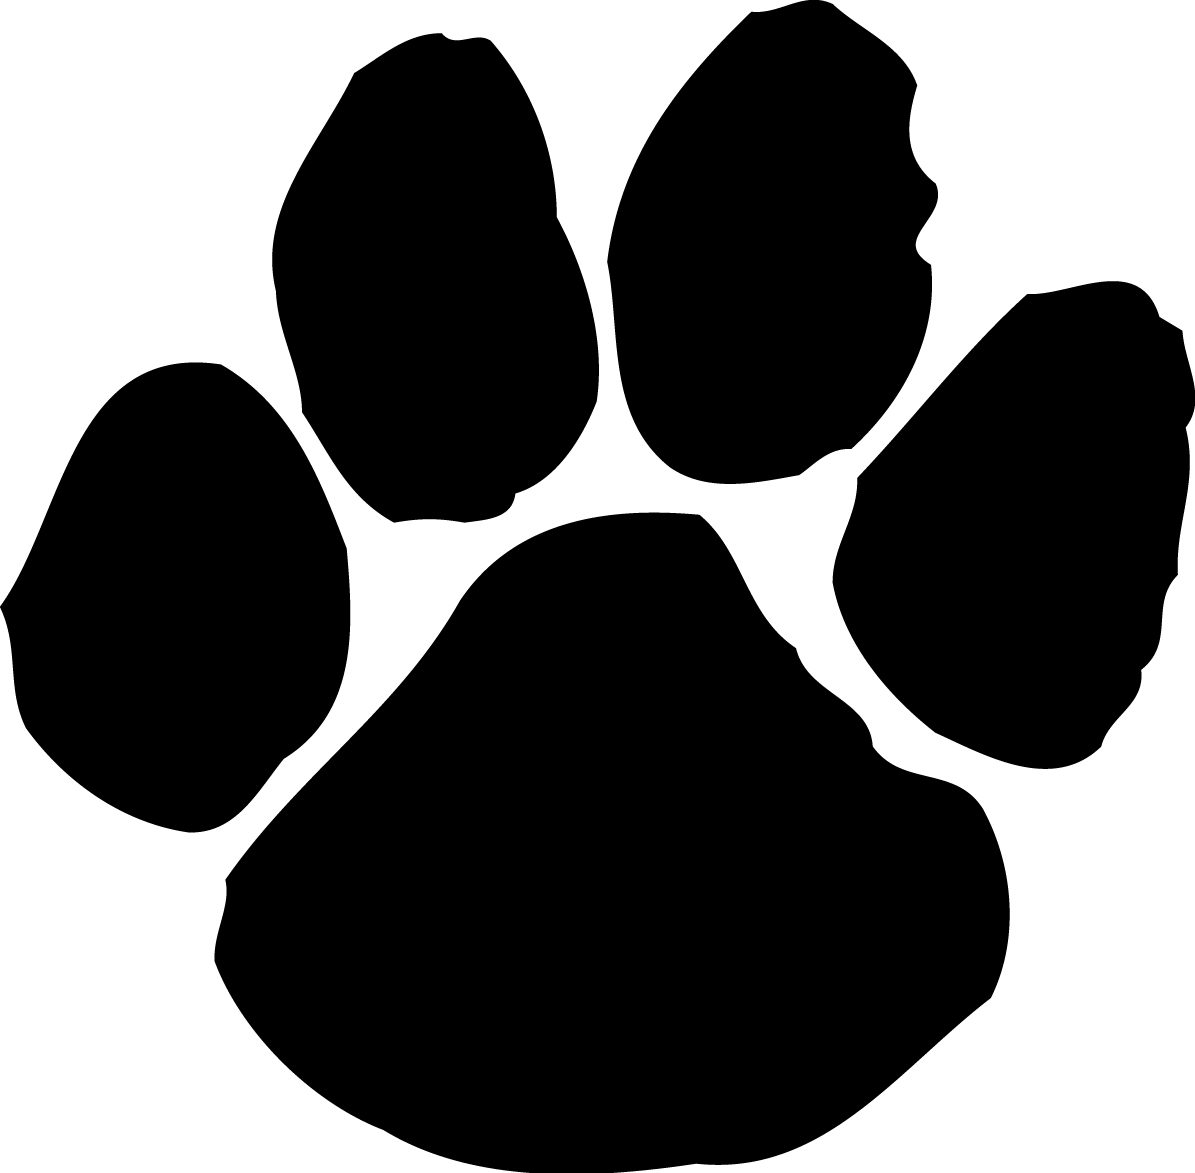 Clip Art Dog Paw Print - Clipart Library-Clip Art Dog Paw Print - Clipart library-3